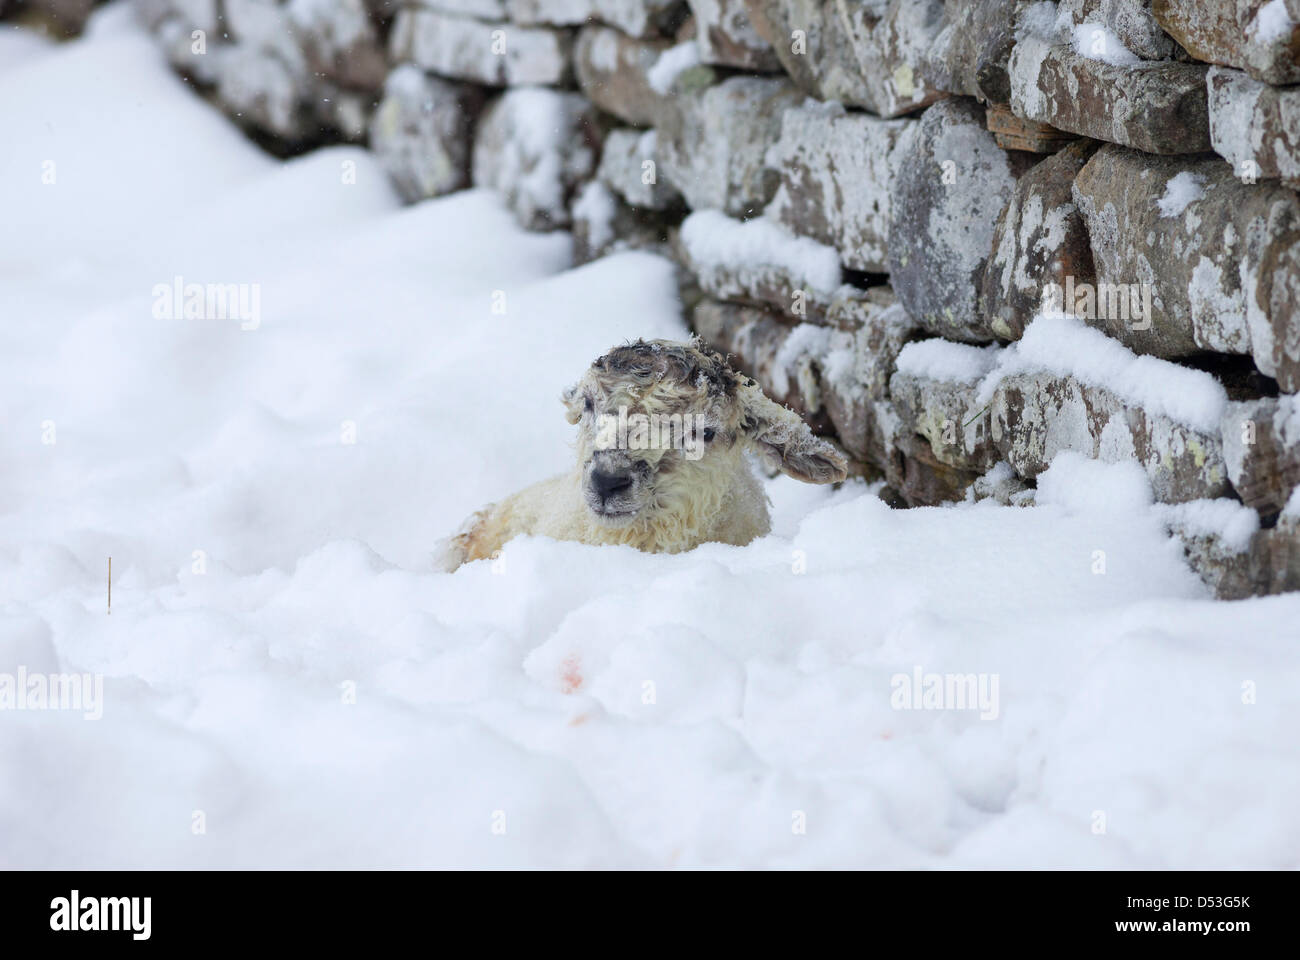 Teesdale, County Durham UK. 23rd March 2013 New born lamb coping with the heavy snowfall and blizzards that hit - Stock Image